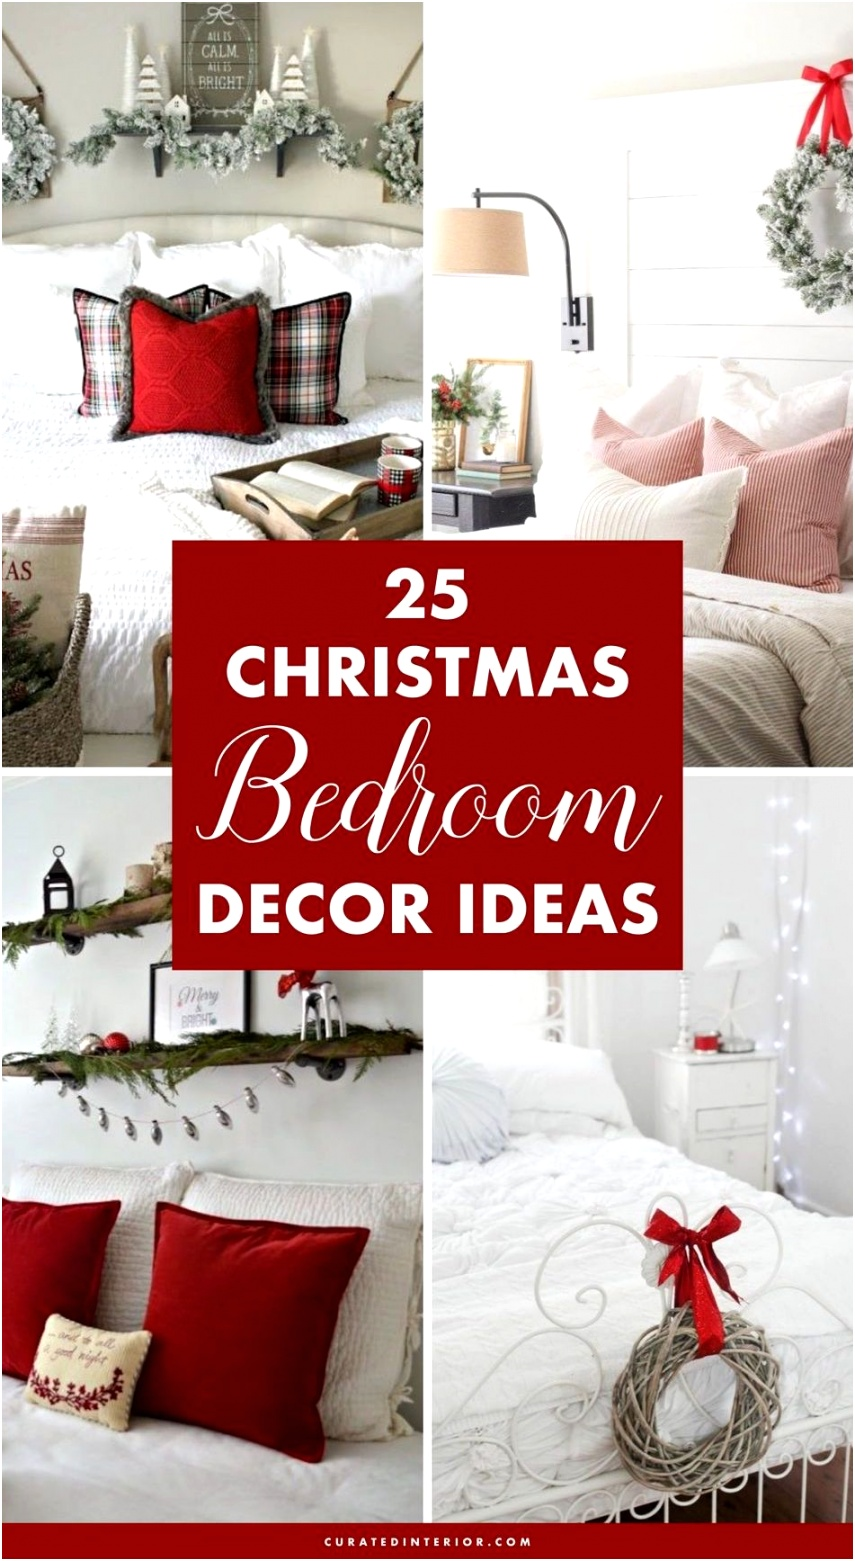 25 BEST Christmas Bedroom Decor Ideas